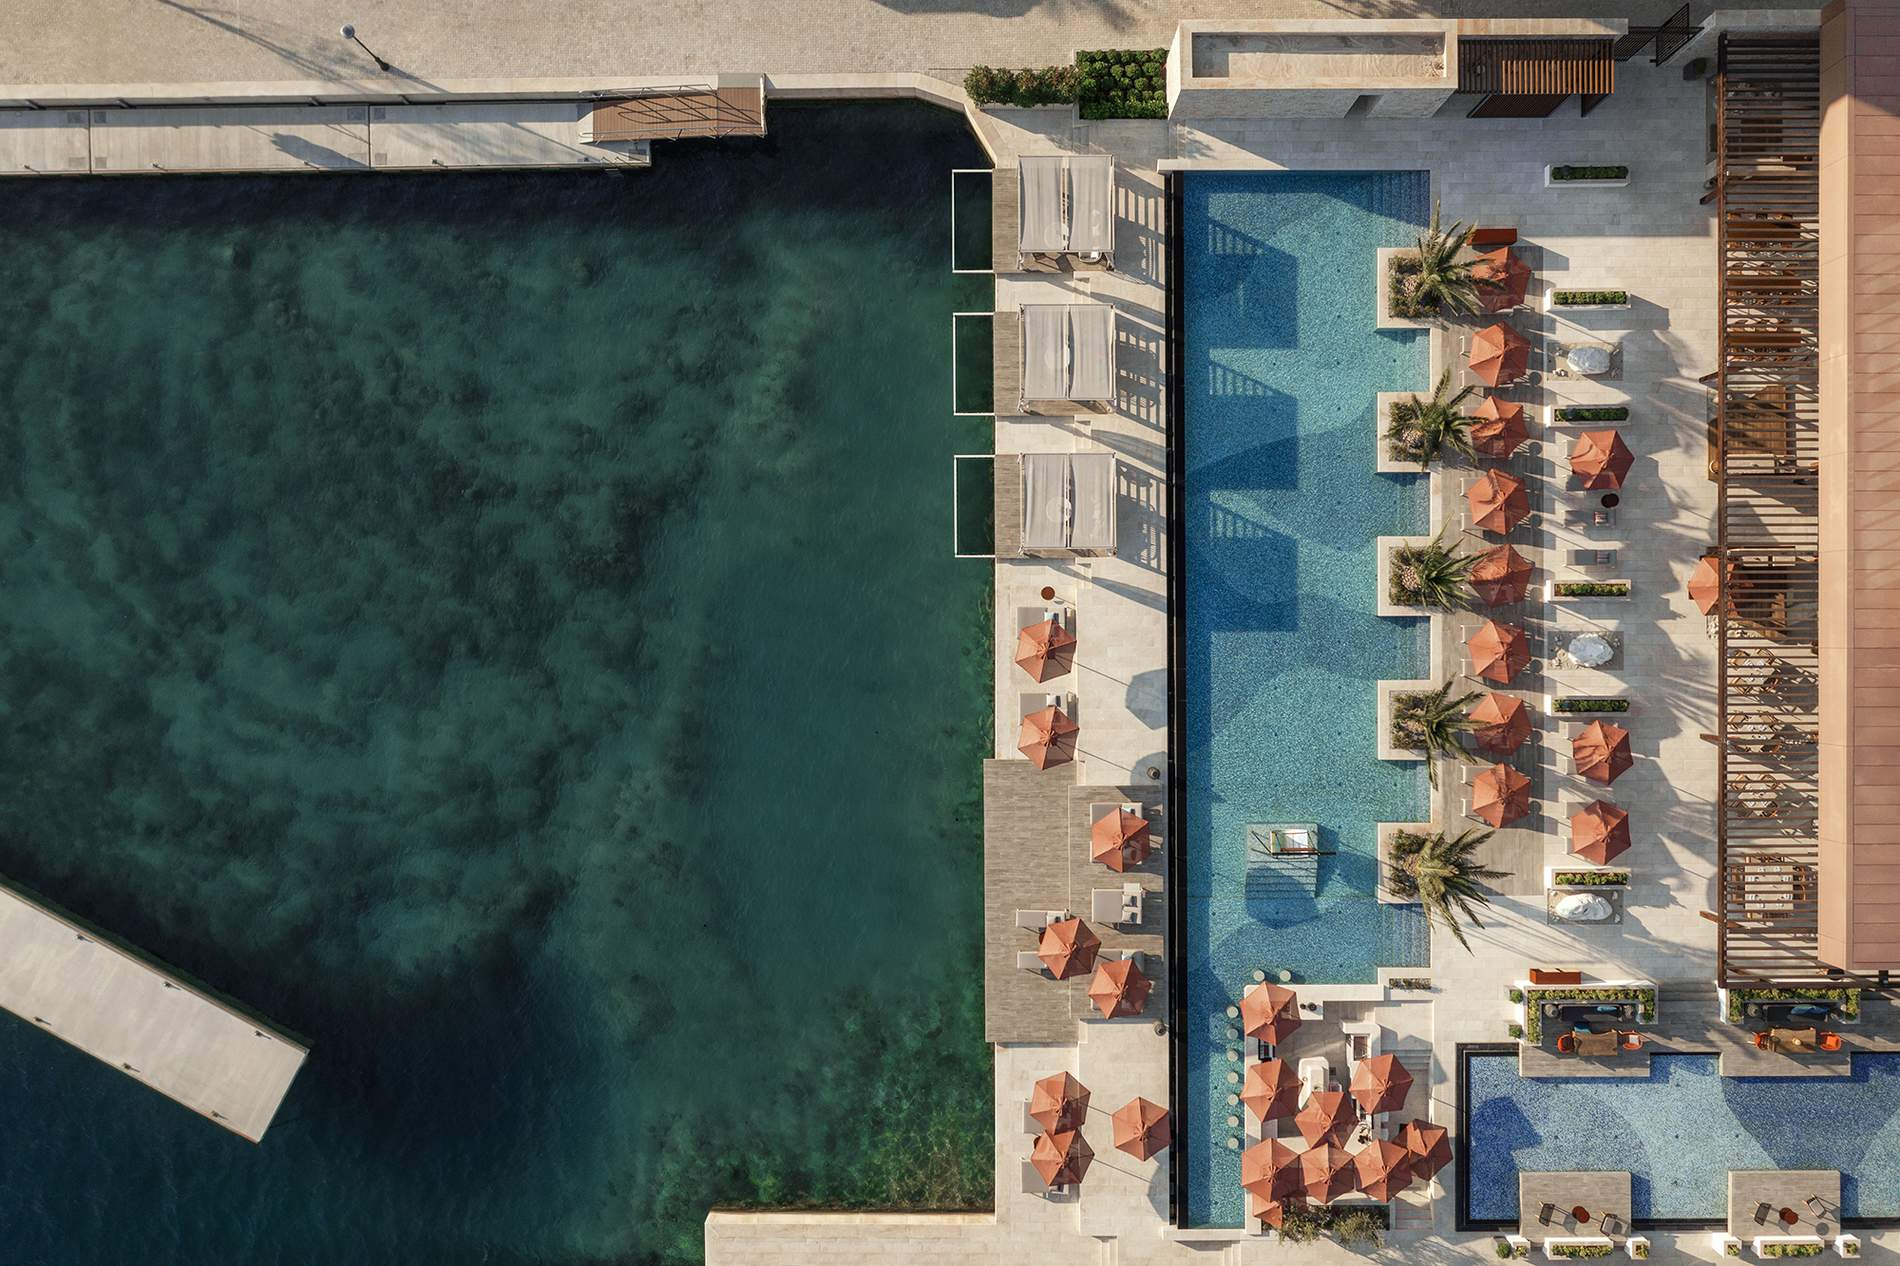 10 of the world's best beach clubs